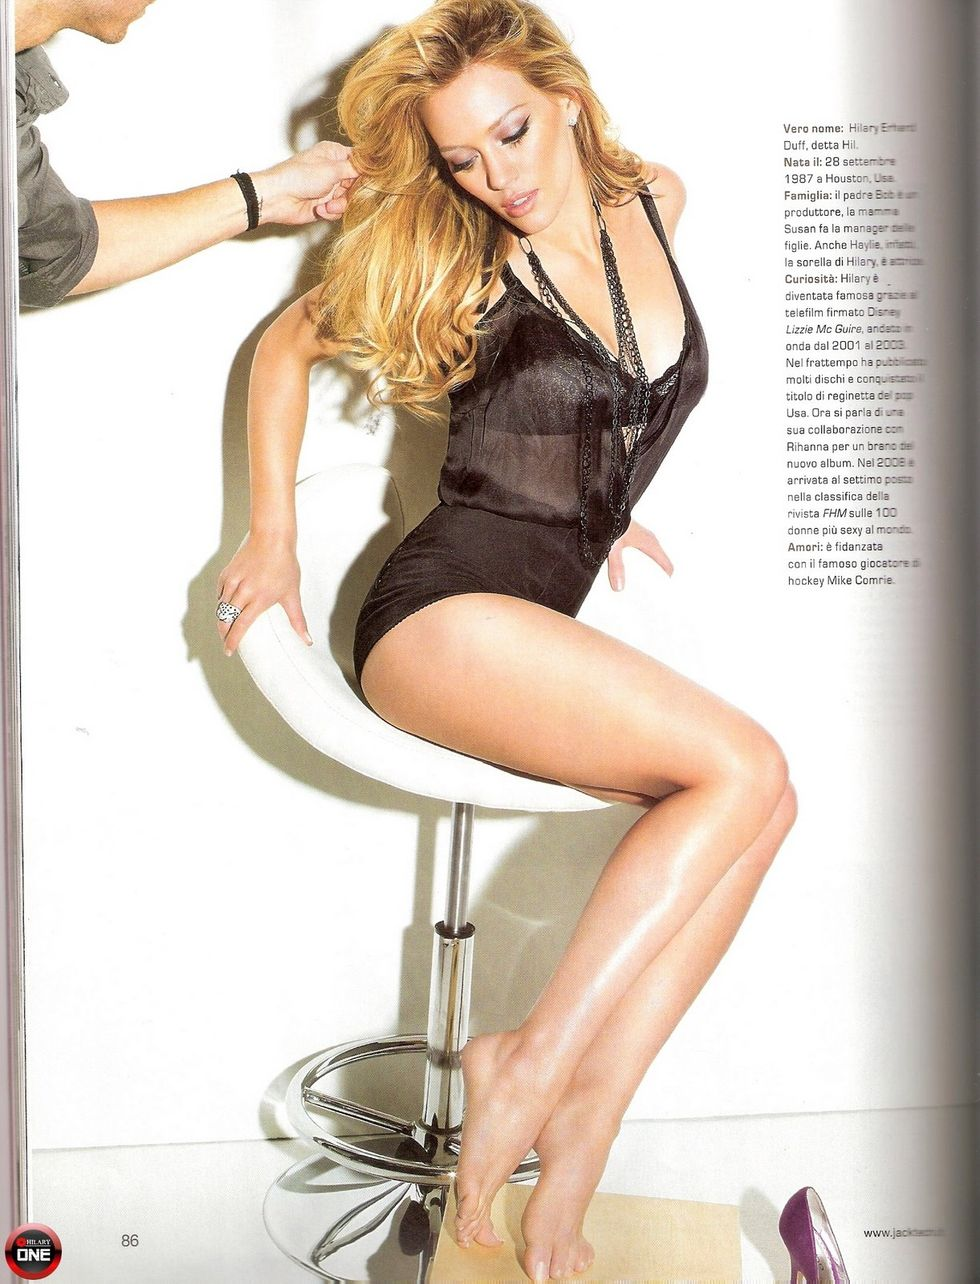 hilary-duff-jack-magazine-august-2009-01